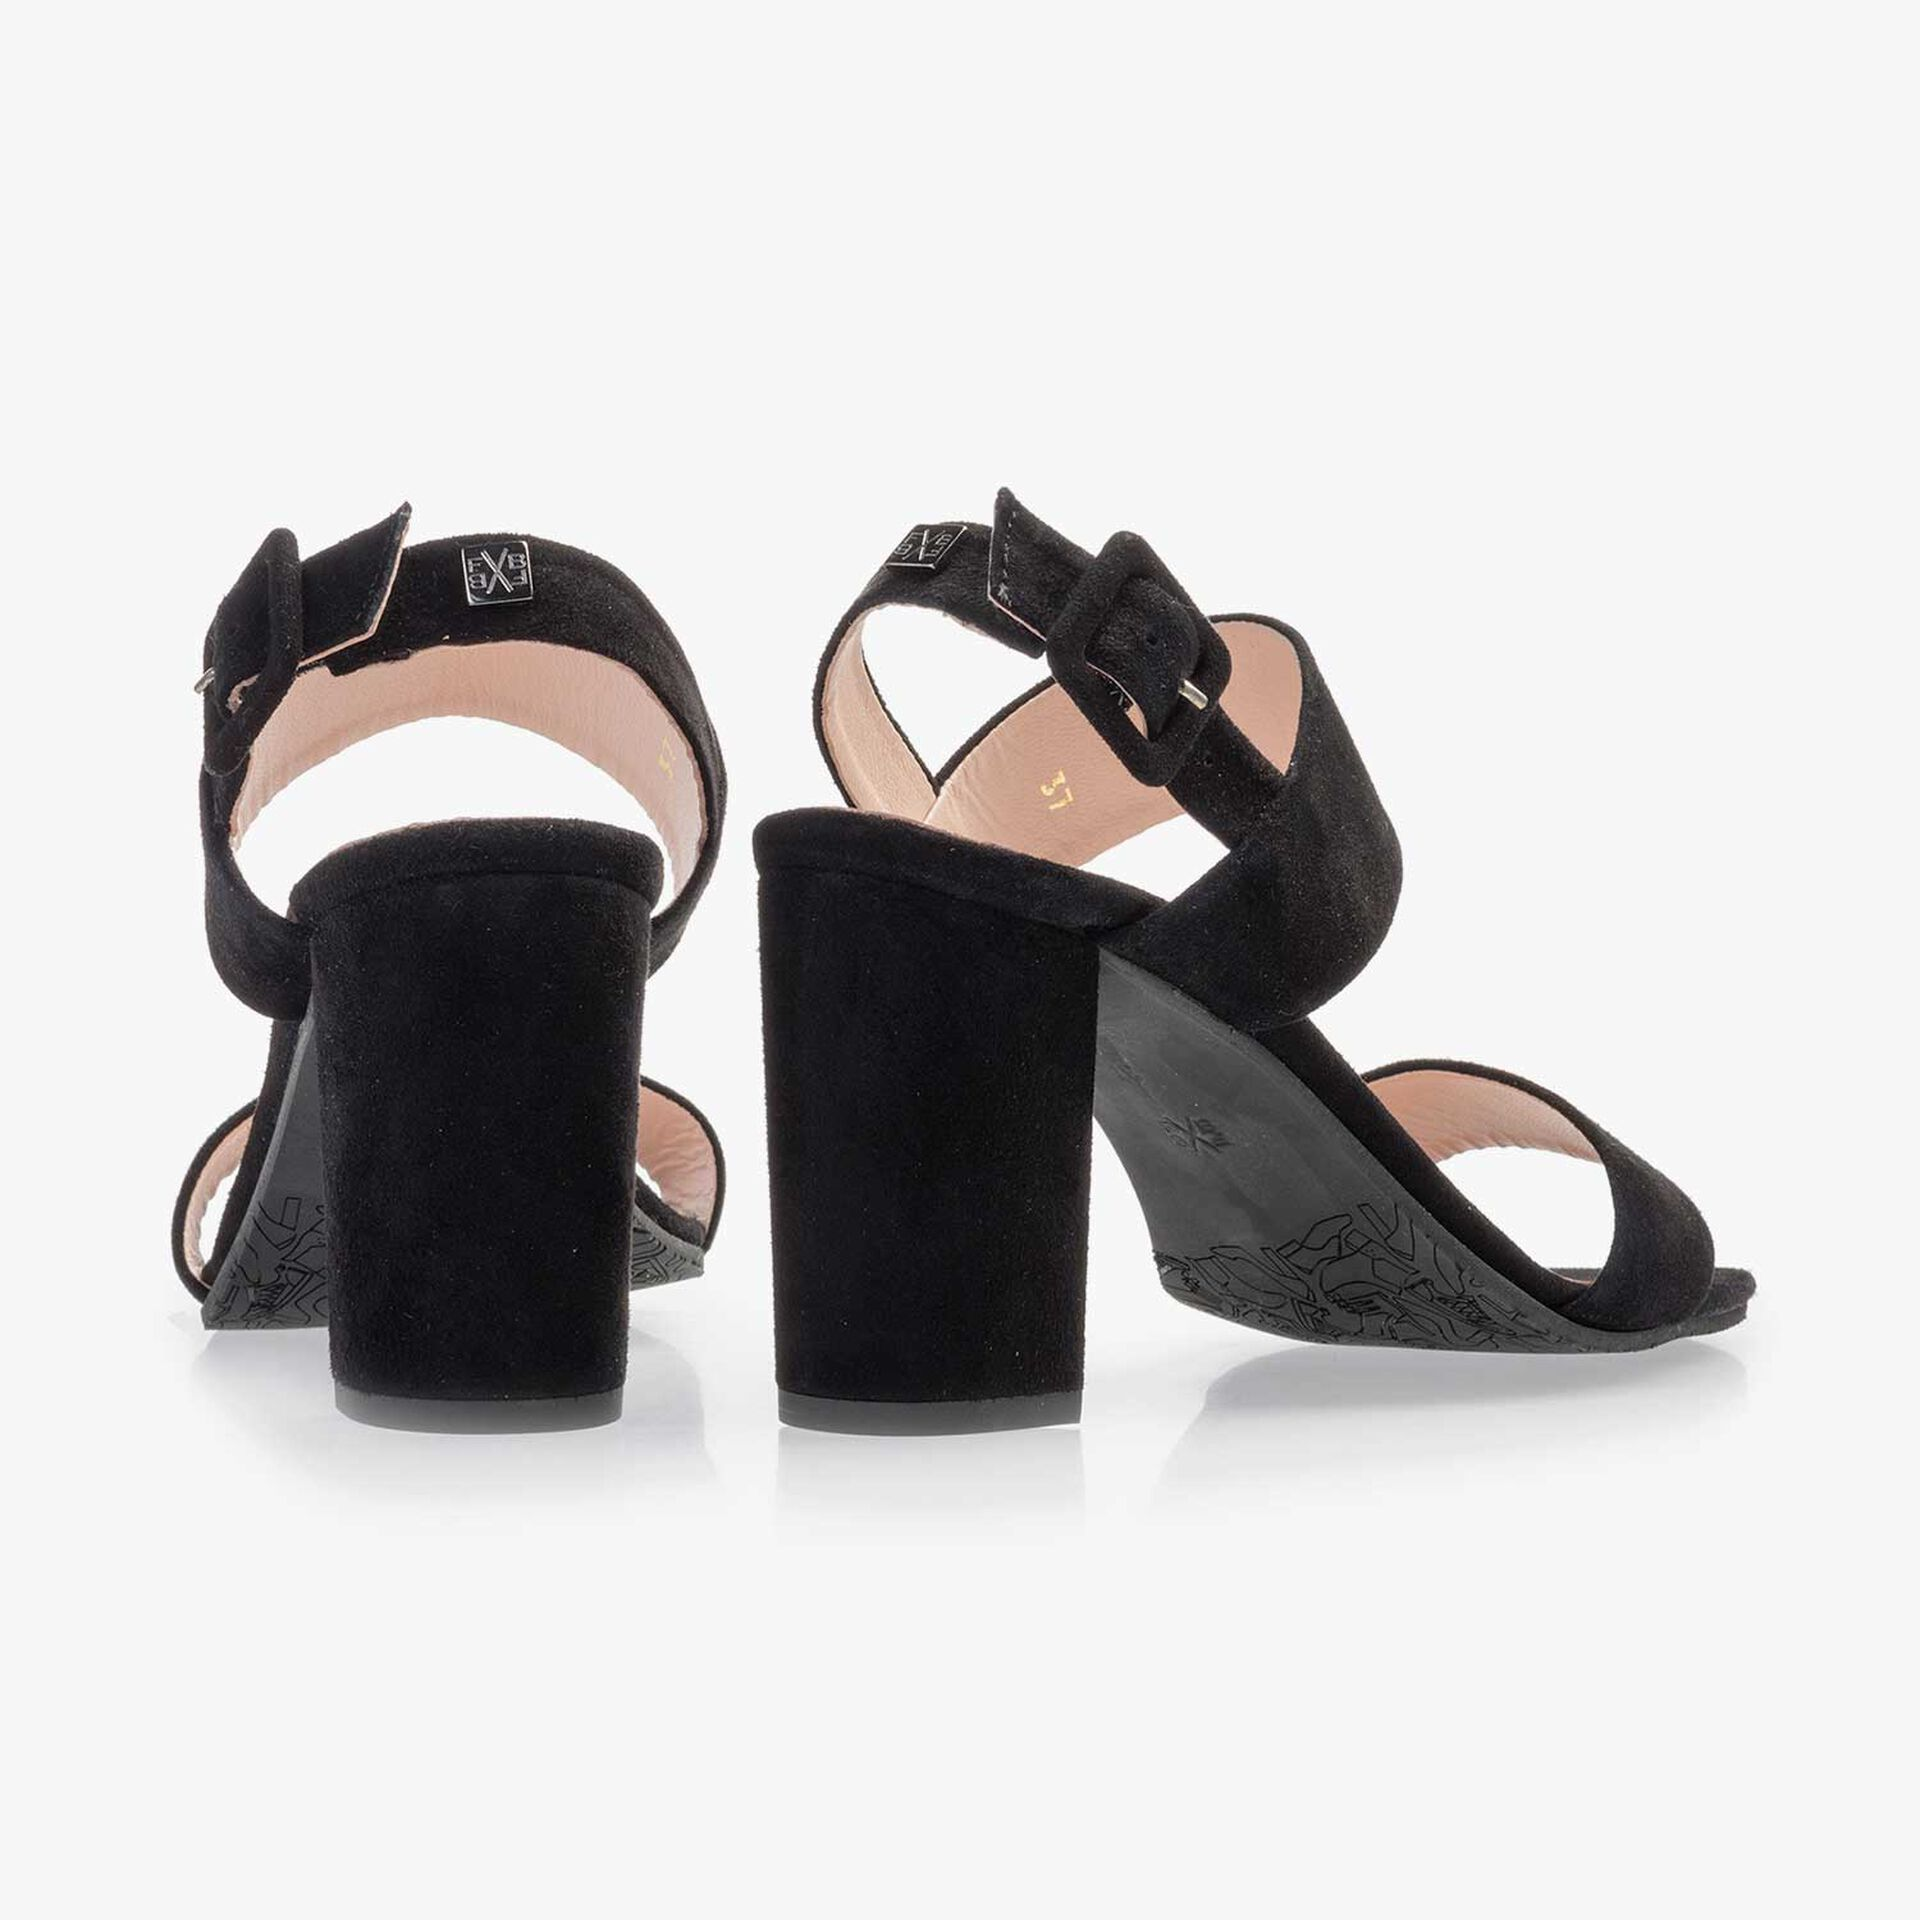 Black suede leather heeled sandal